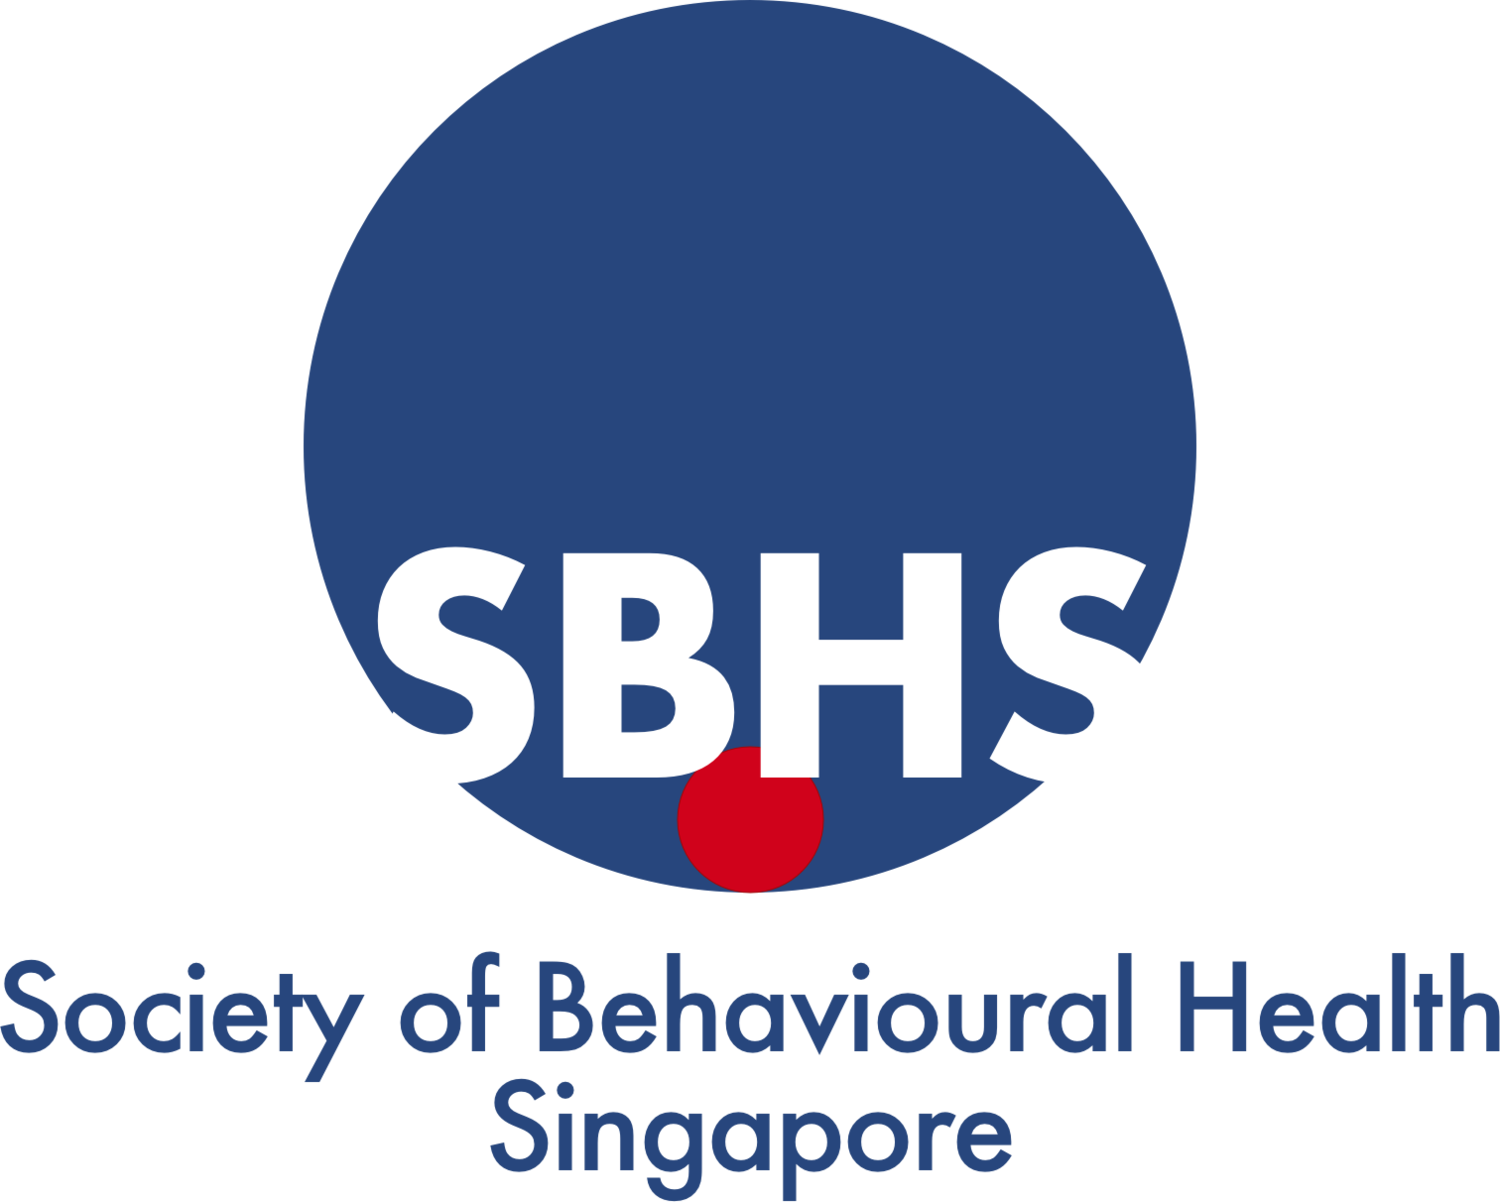 Society of Behavioural Health, Singapore